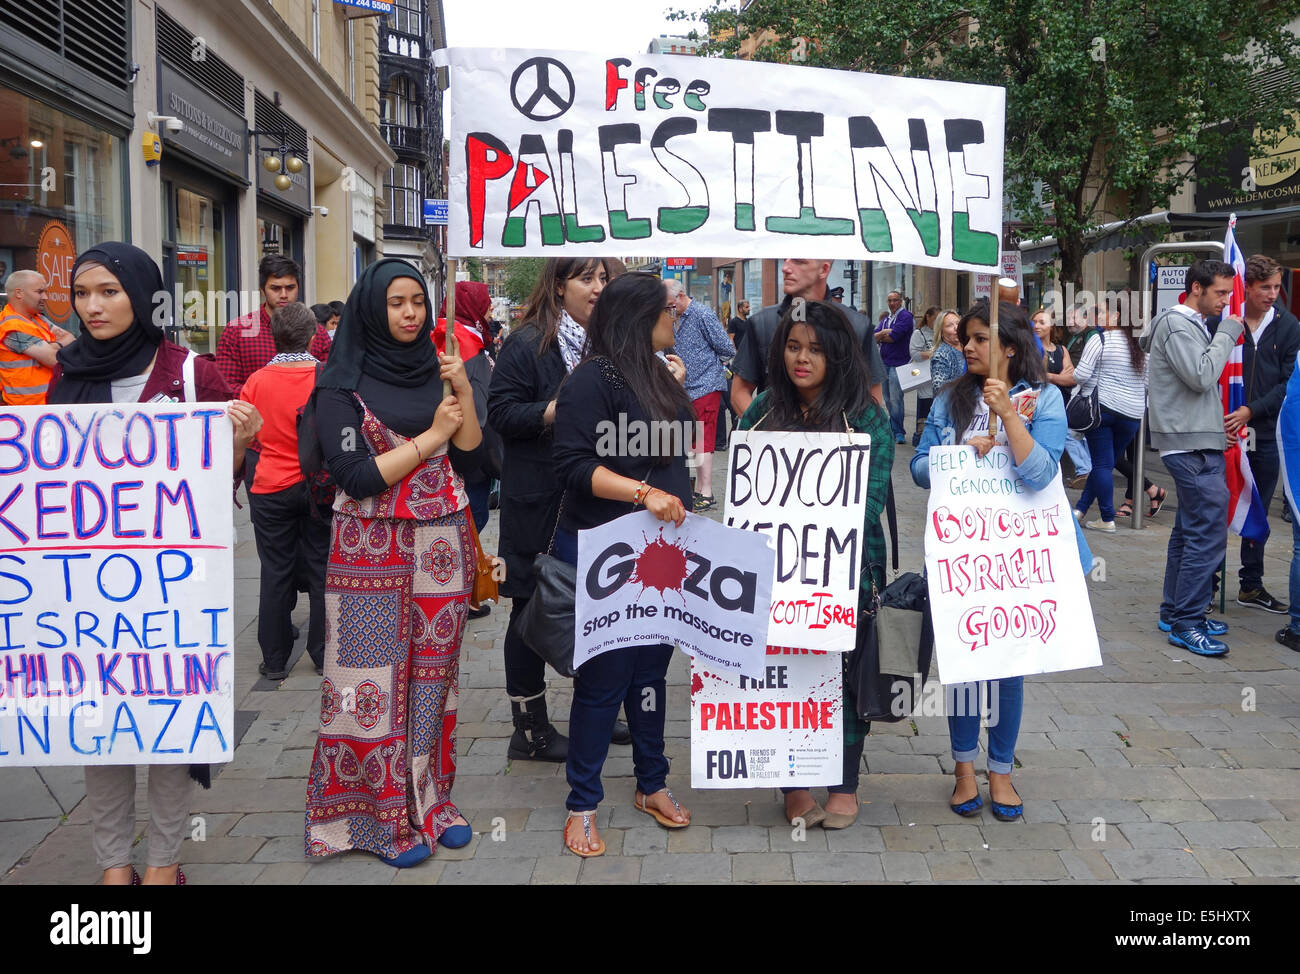 Supporters of Palestine protesting against Israel, in the British city of Manchester, England, UK - Stock Image